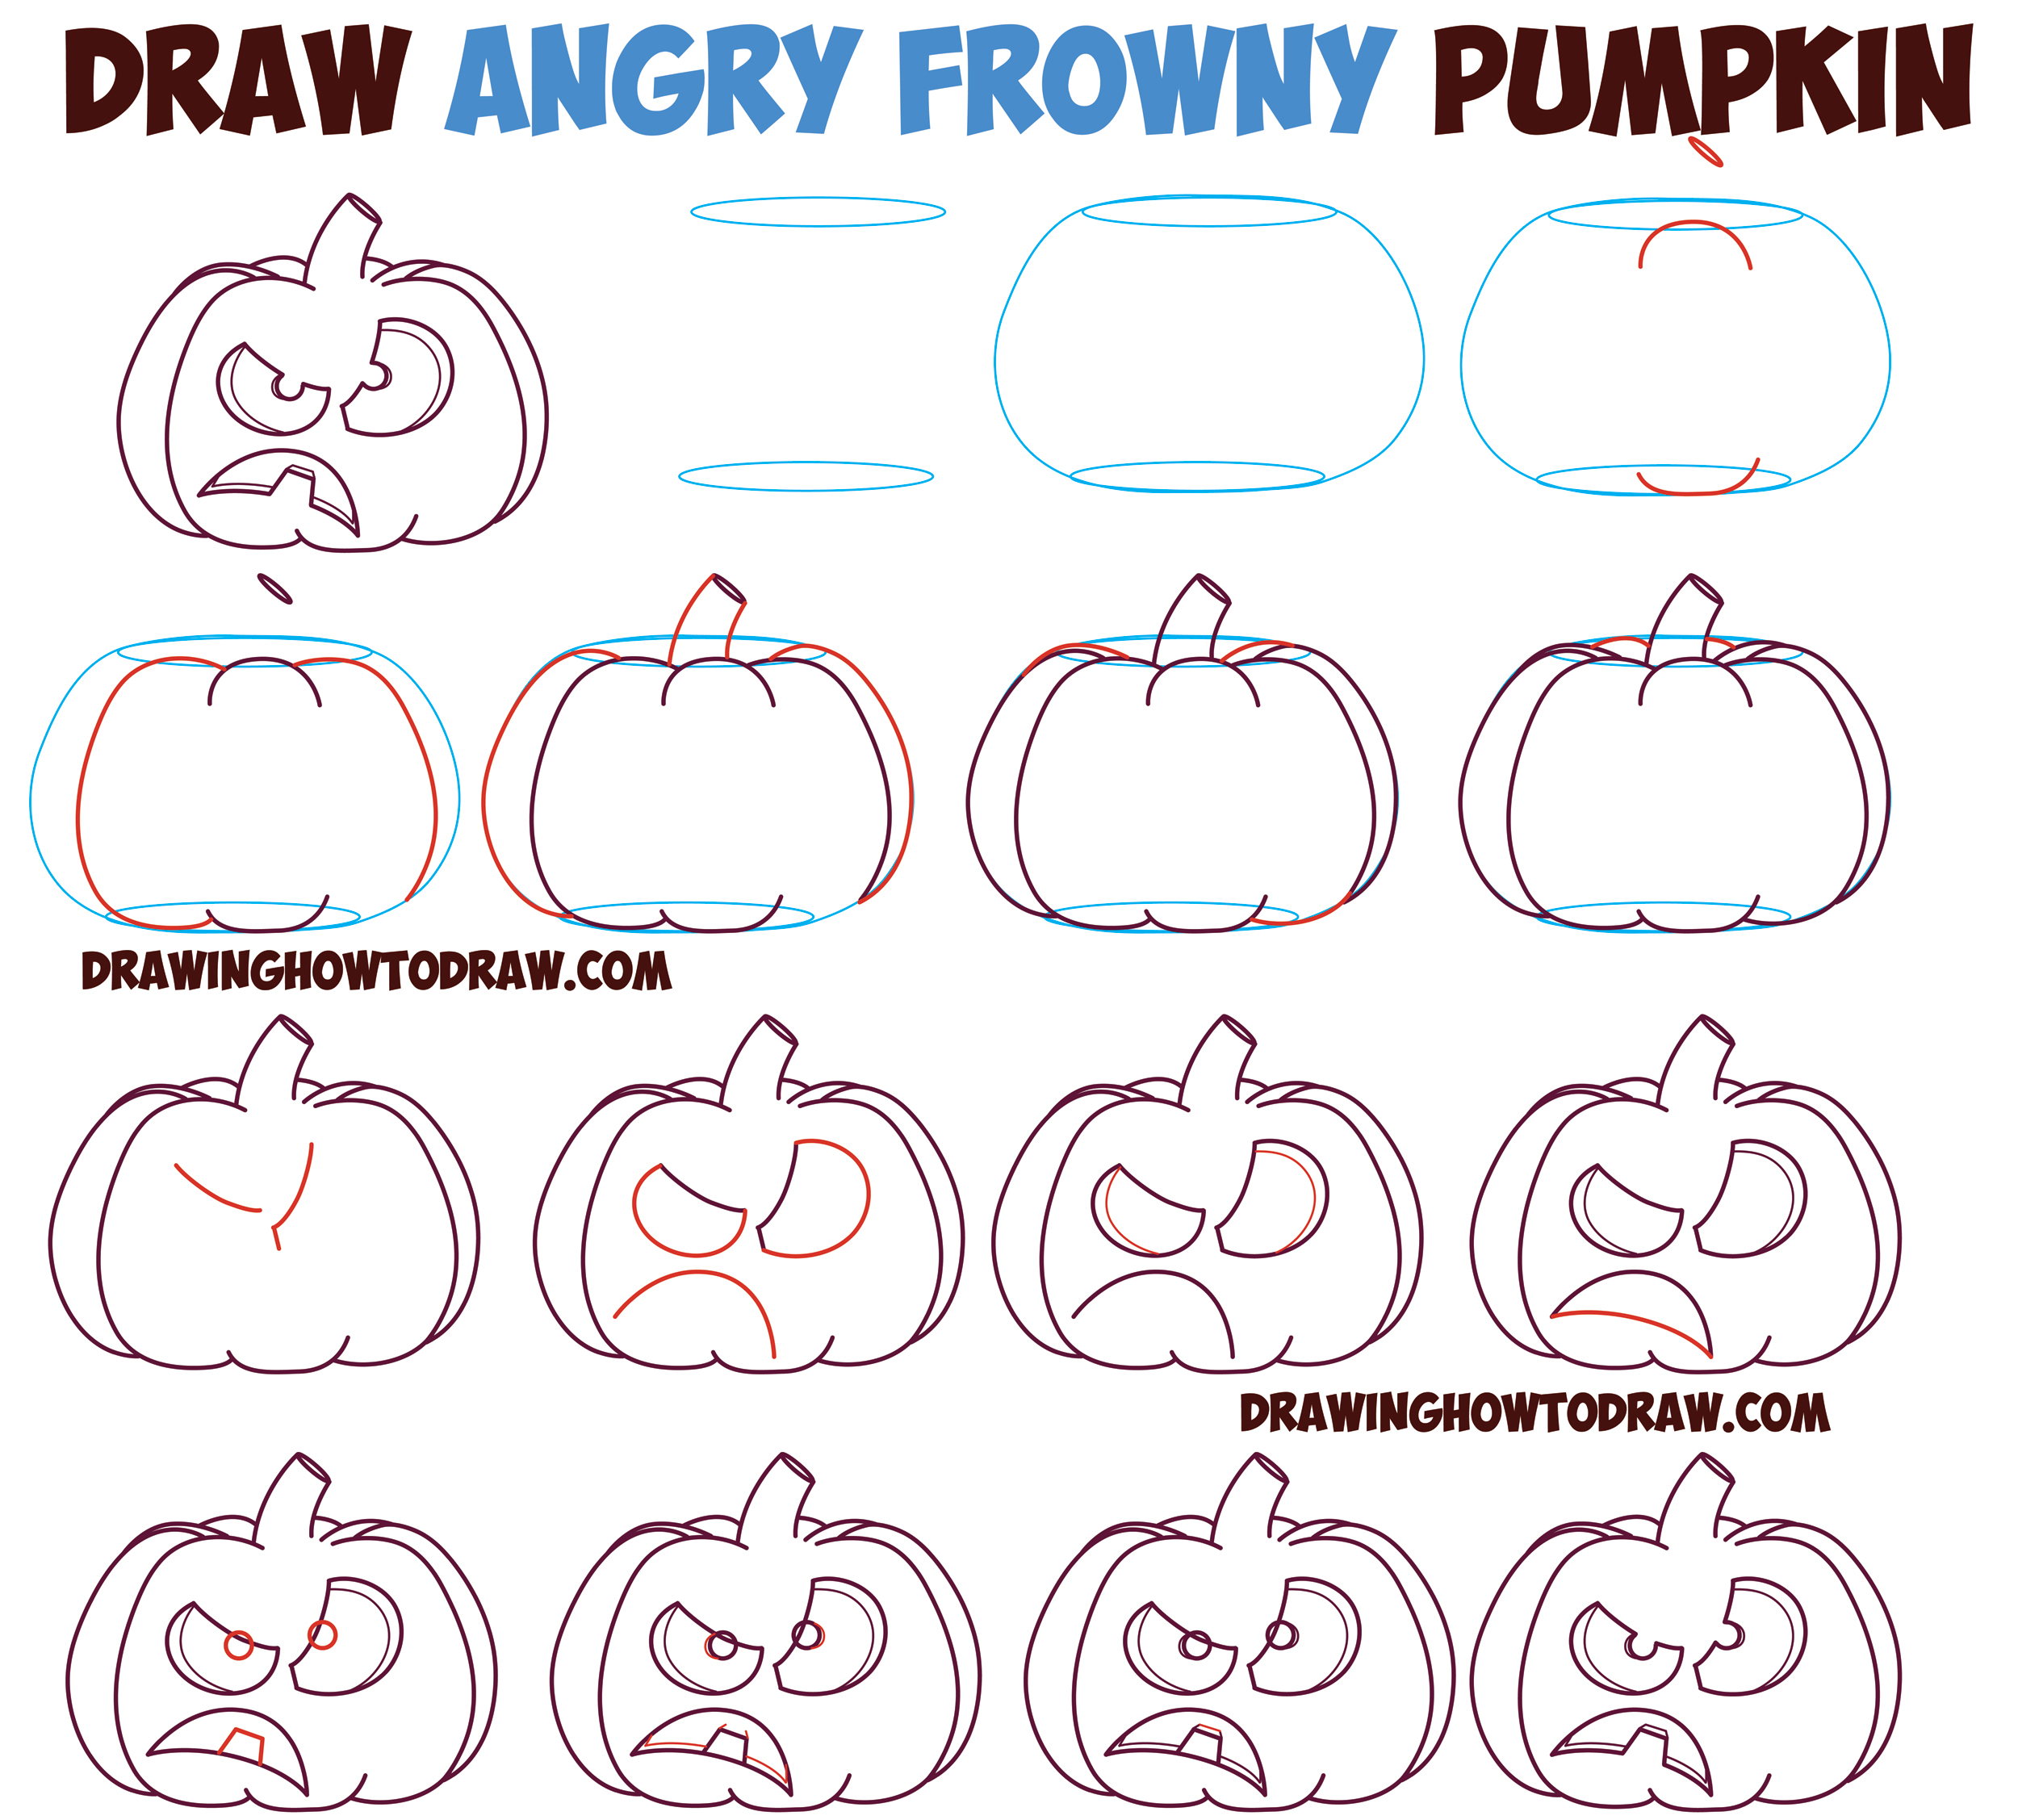 How to Draw UnHappy Frowning Pumpkin Faces / Jack O'Lanterns